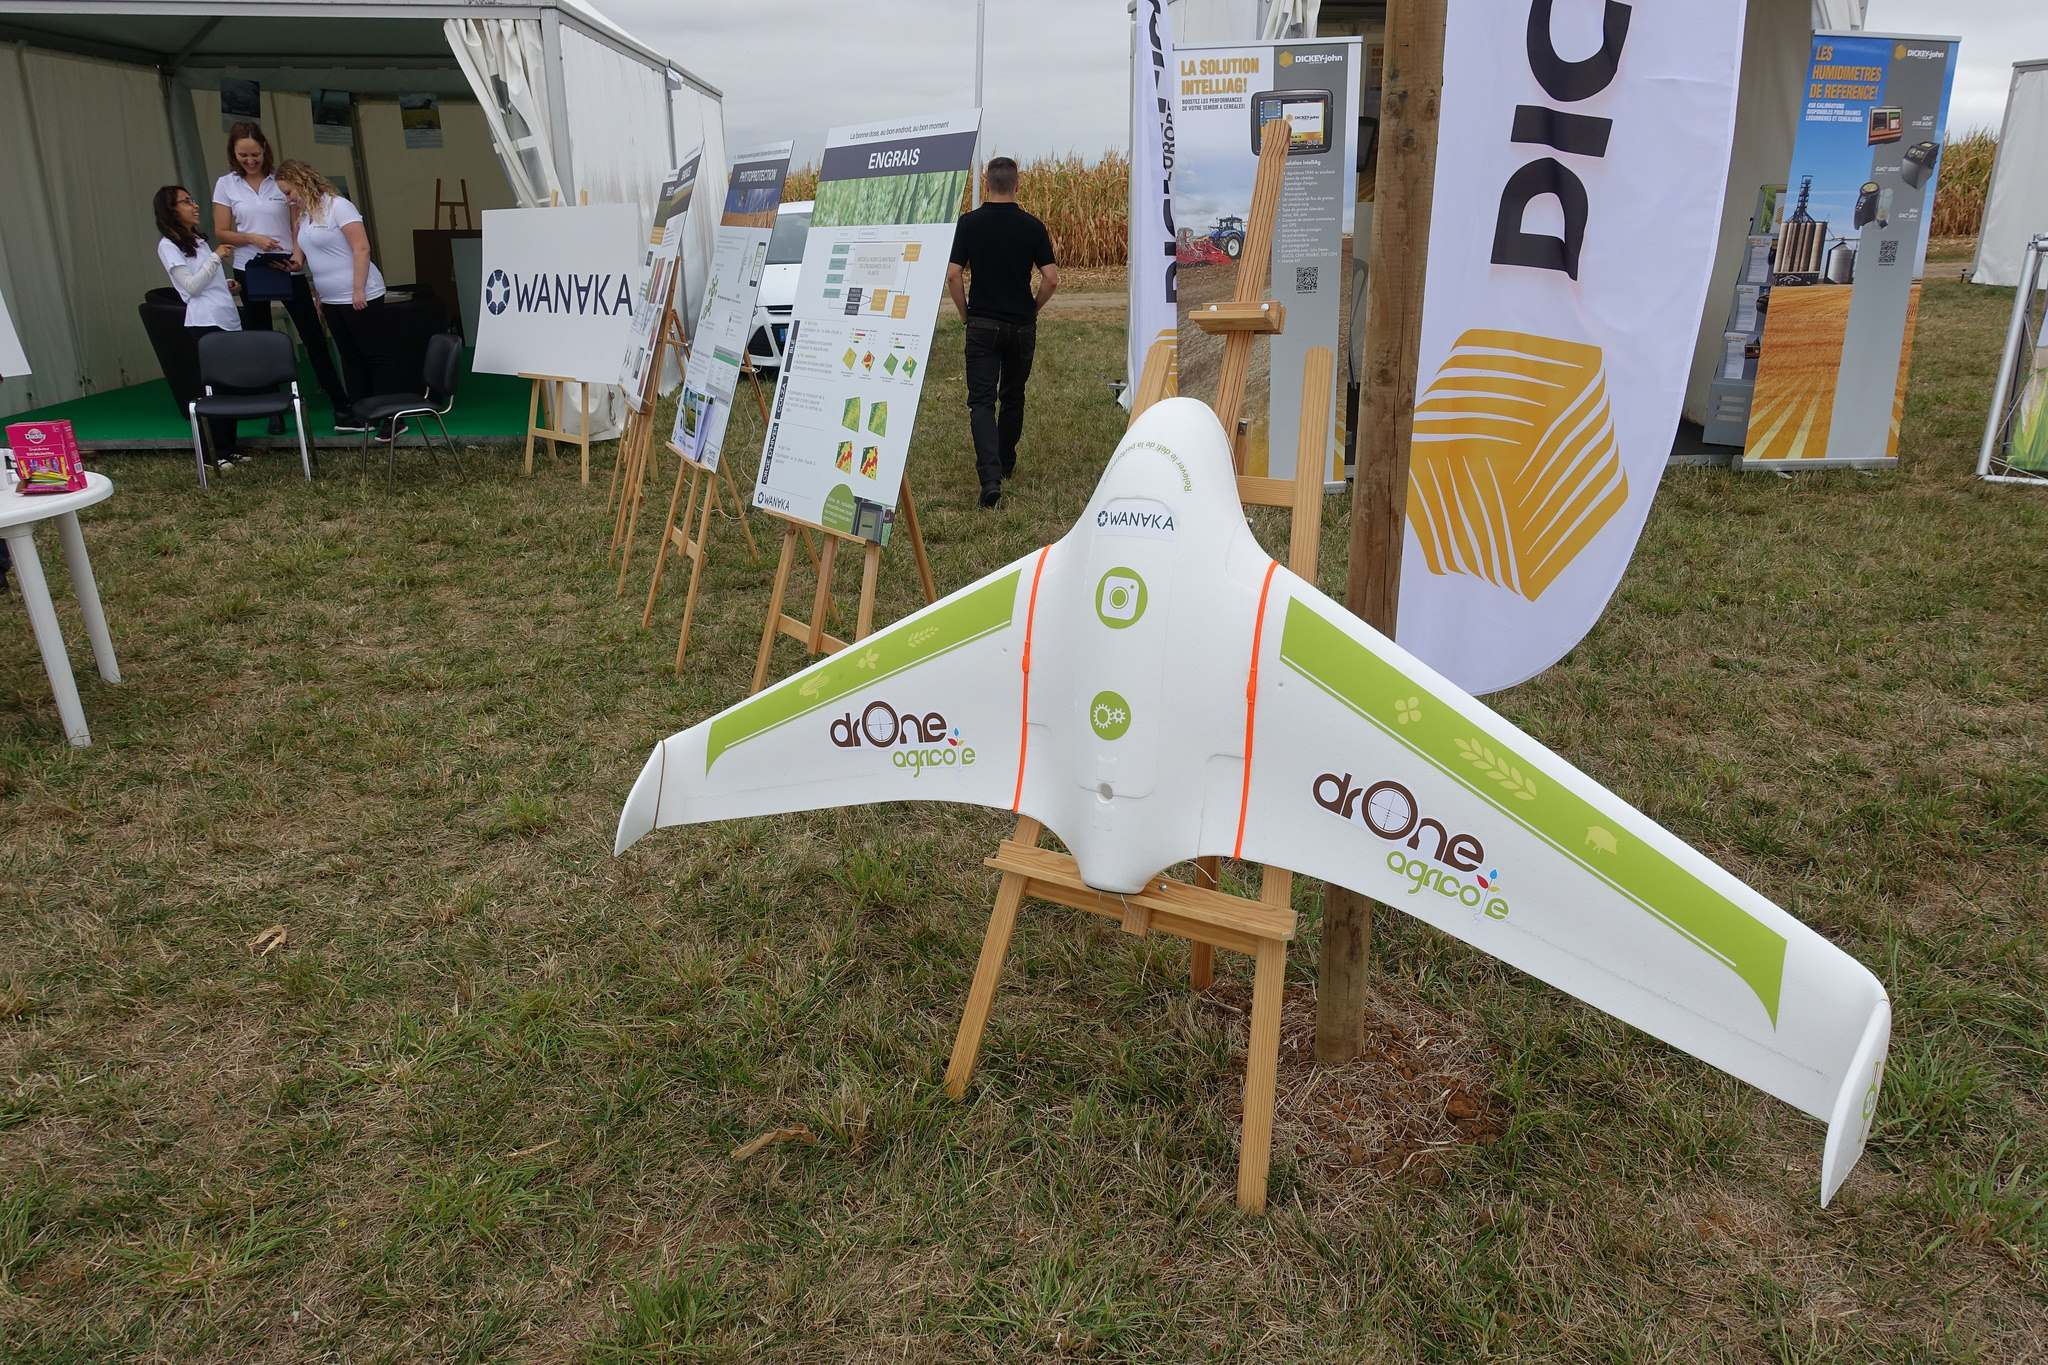 innov agri18 Innov agri 2016 Agriculture show in Outarville, France